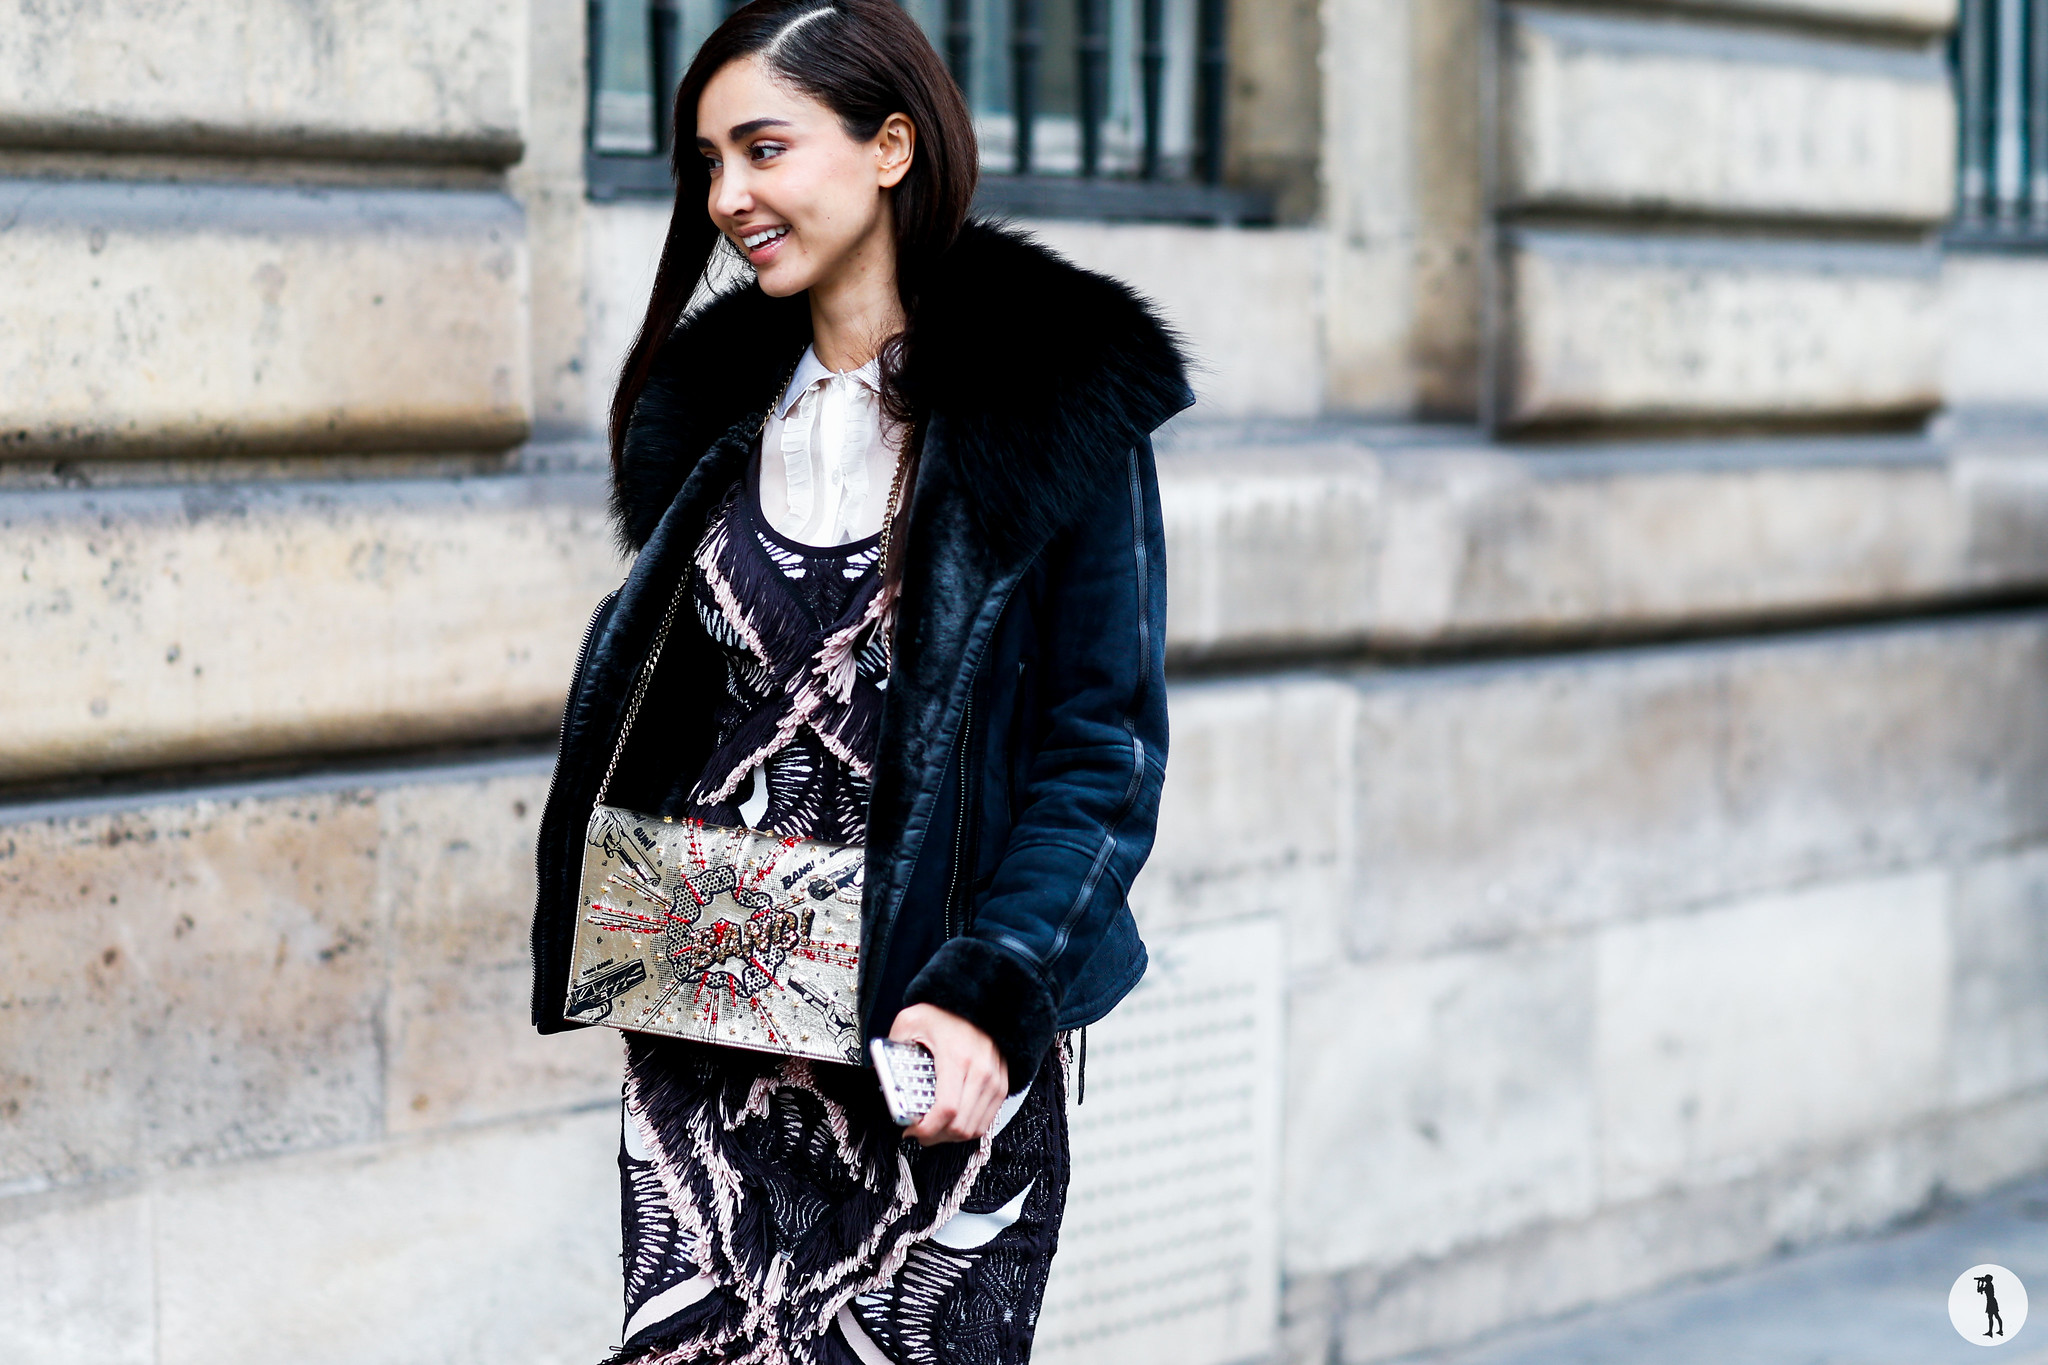 Patricia Contreras at Paris Fashion Week Menswear